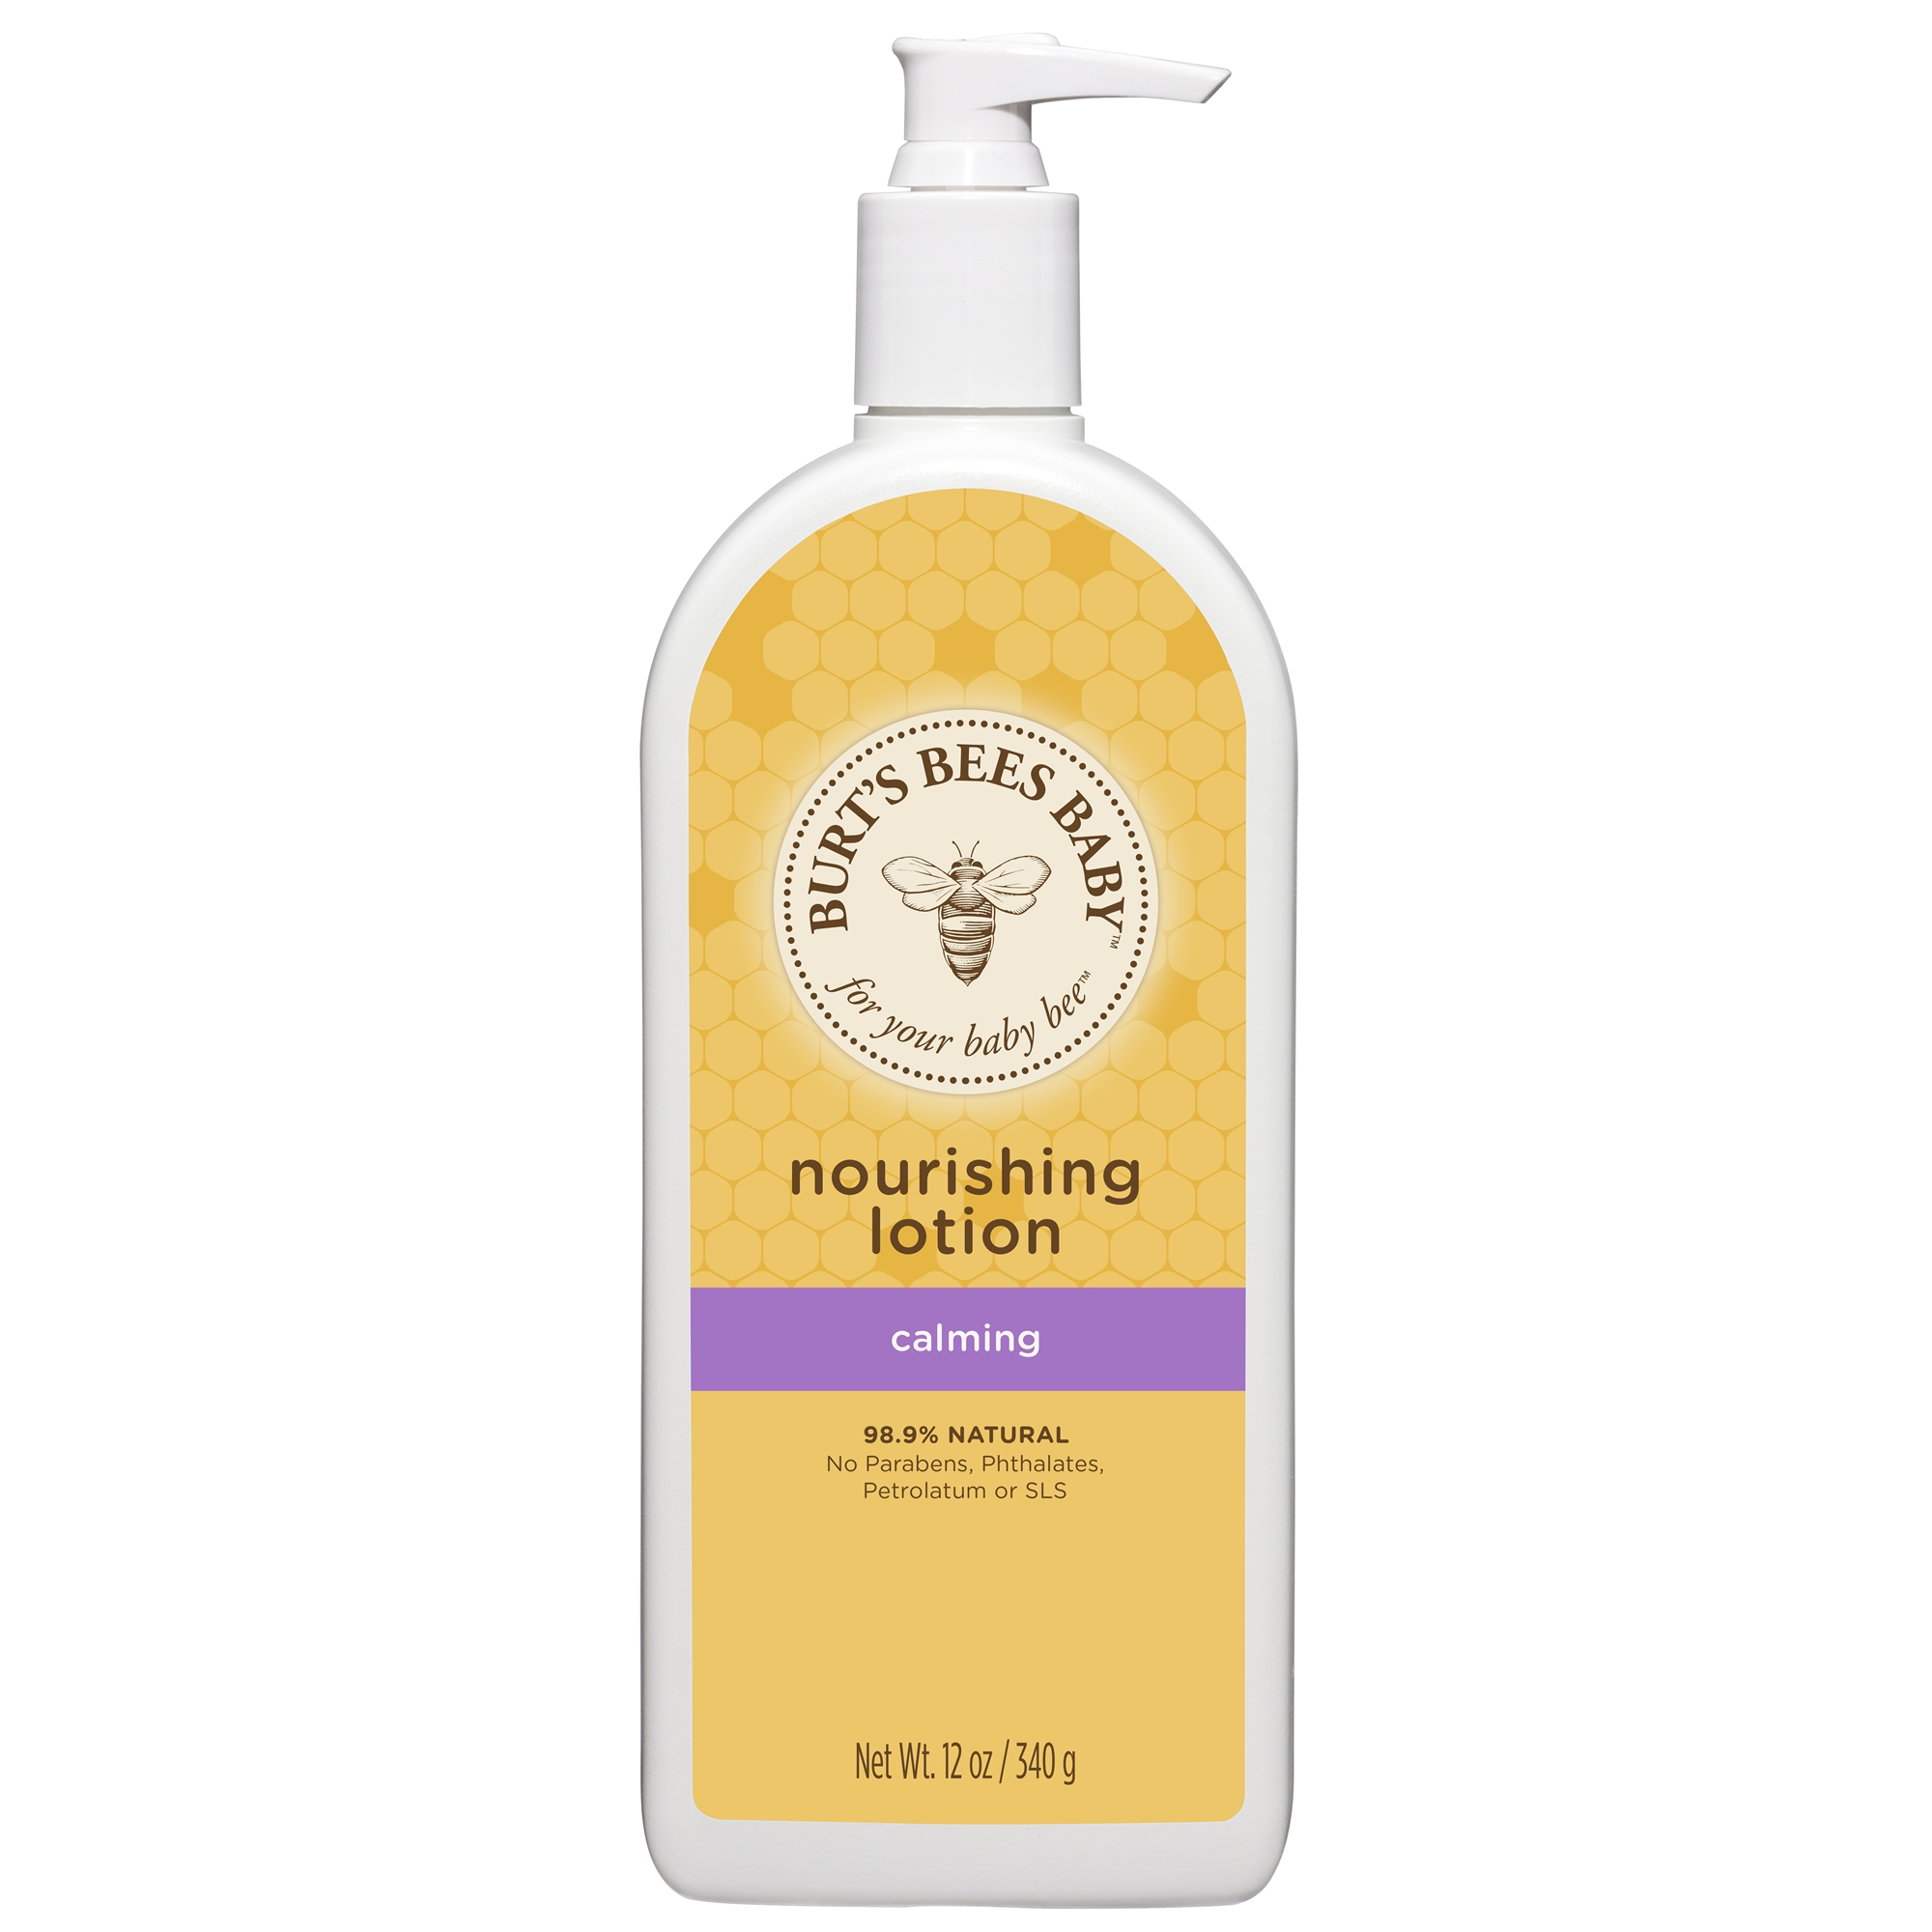 Burt's Bees Baby Bee Nourishing Lotion Calming, 12.0 OZ